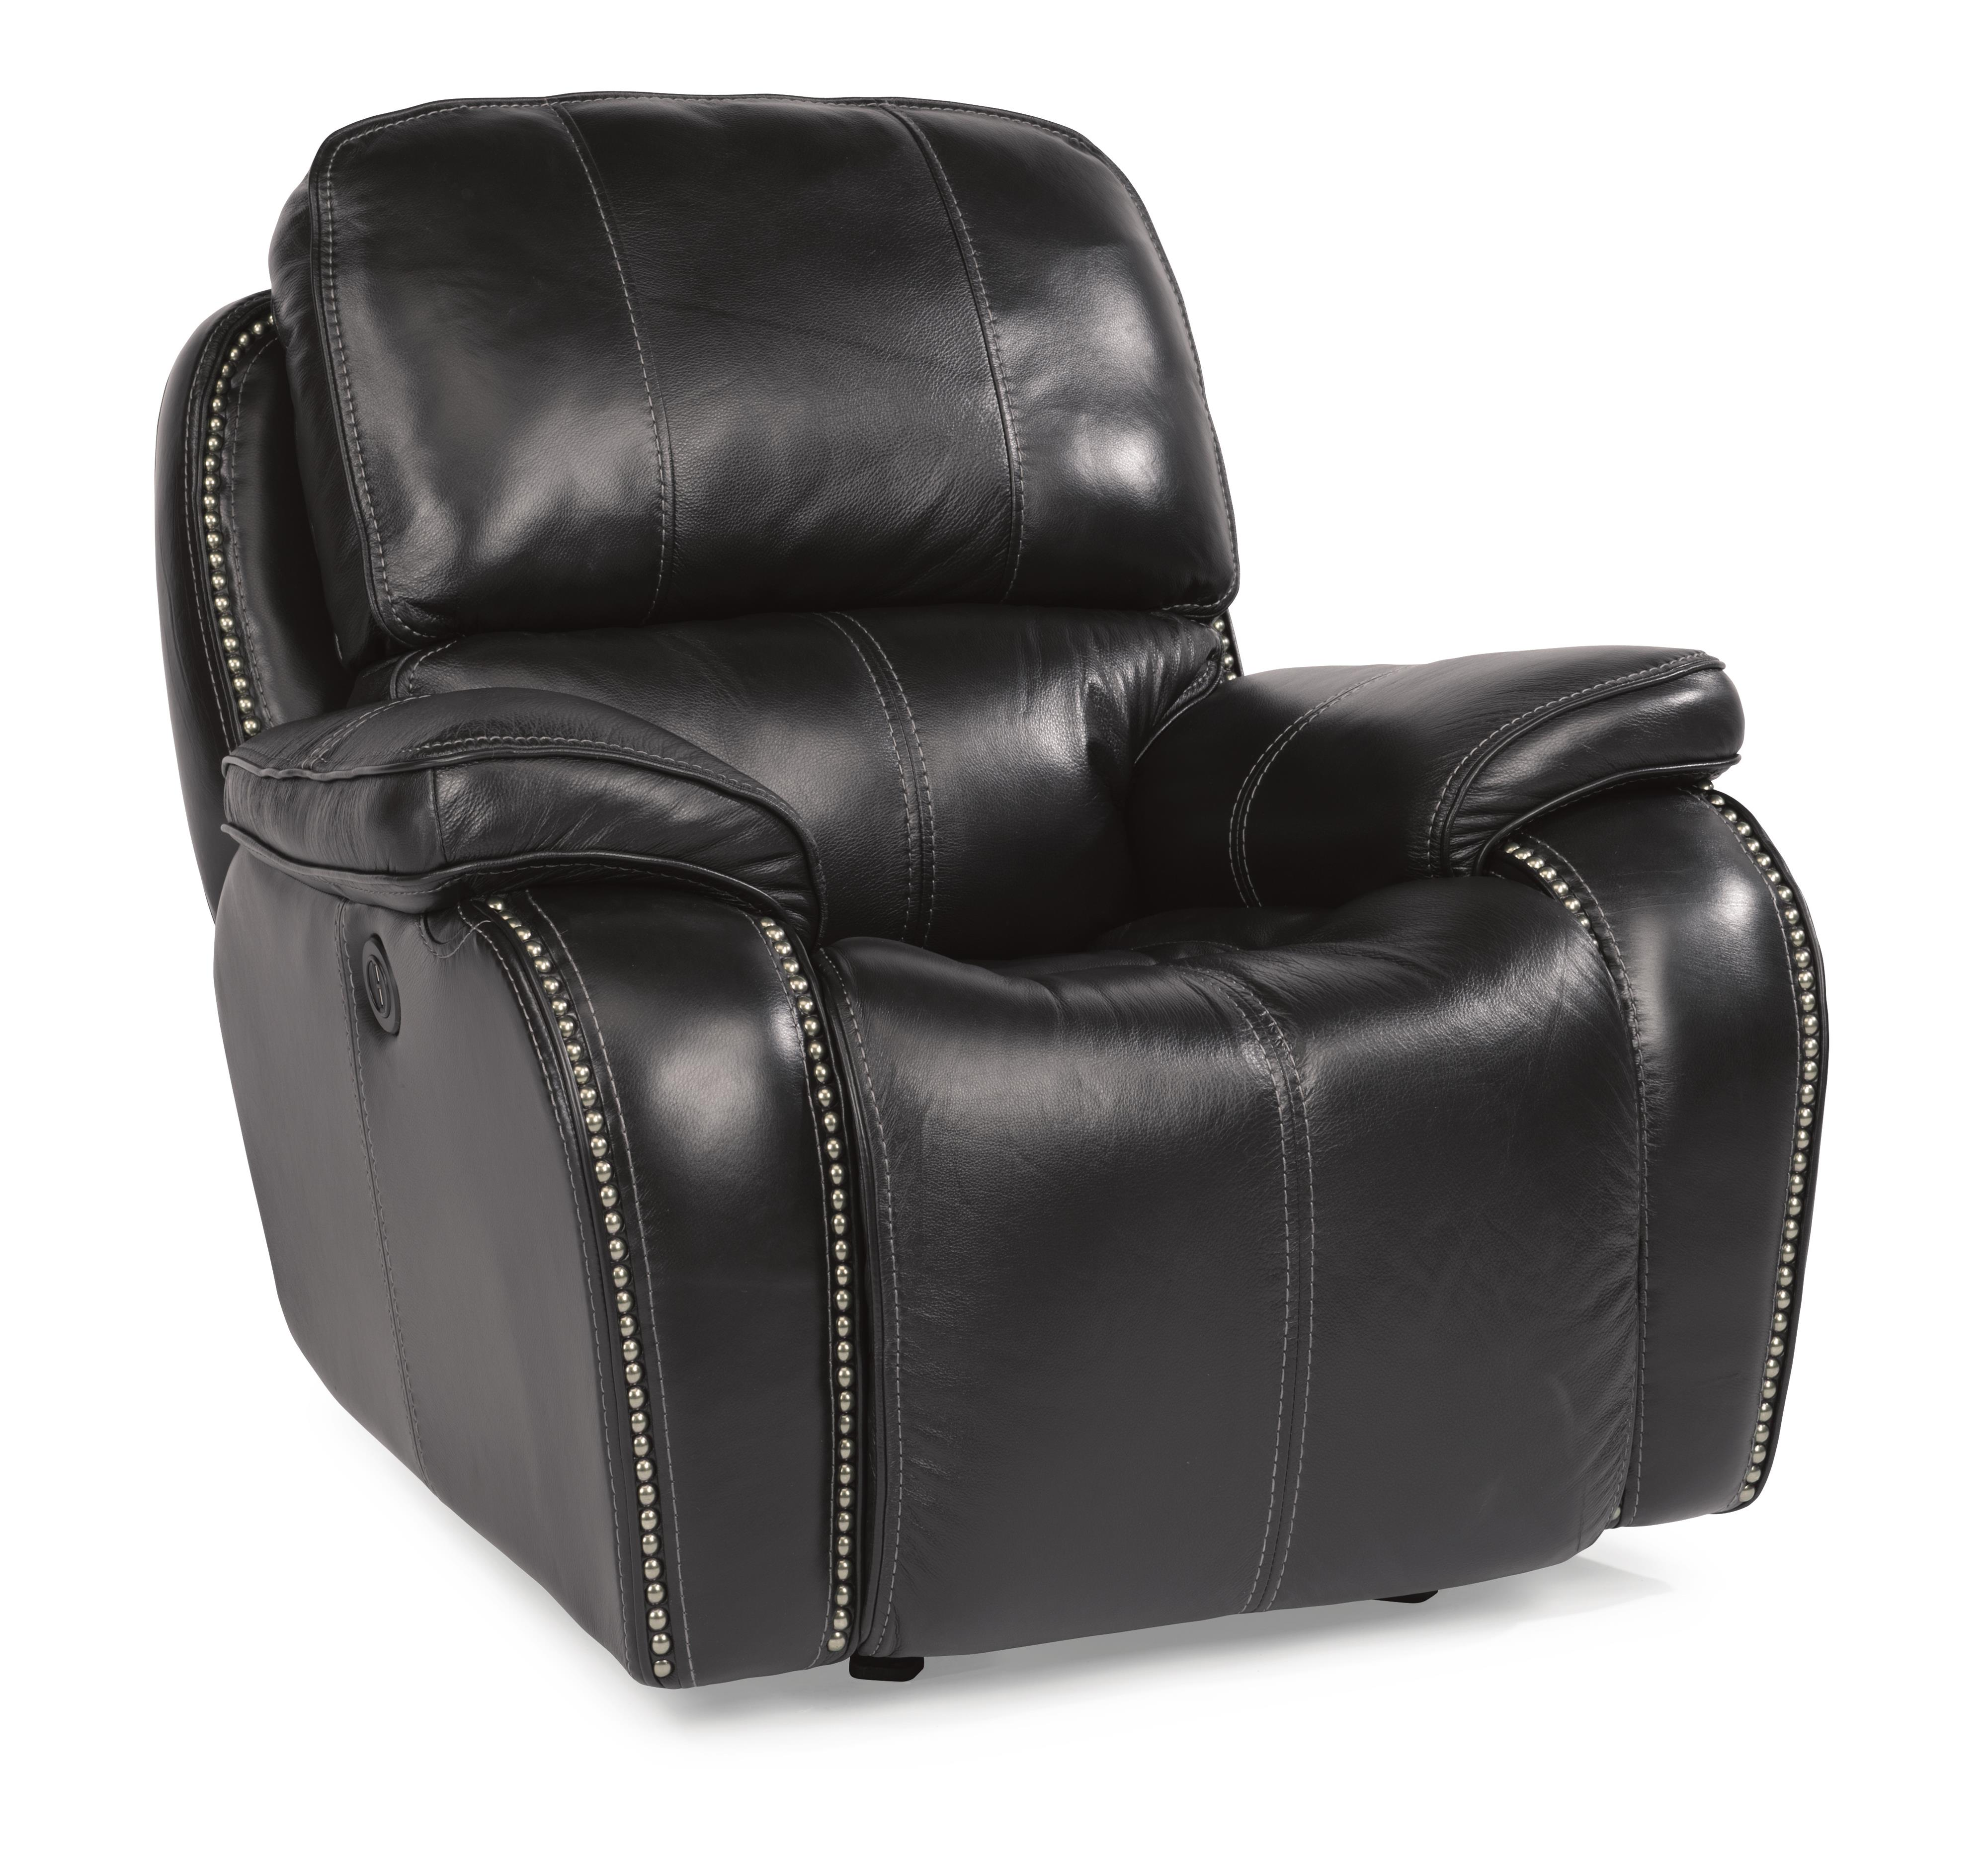 Flexsteel Latitudes-MacKay Power Gliding Recliner - Item Number: 1617-54P-014-03LV